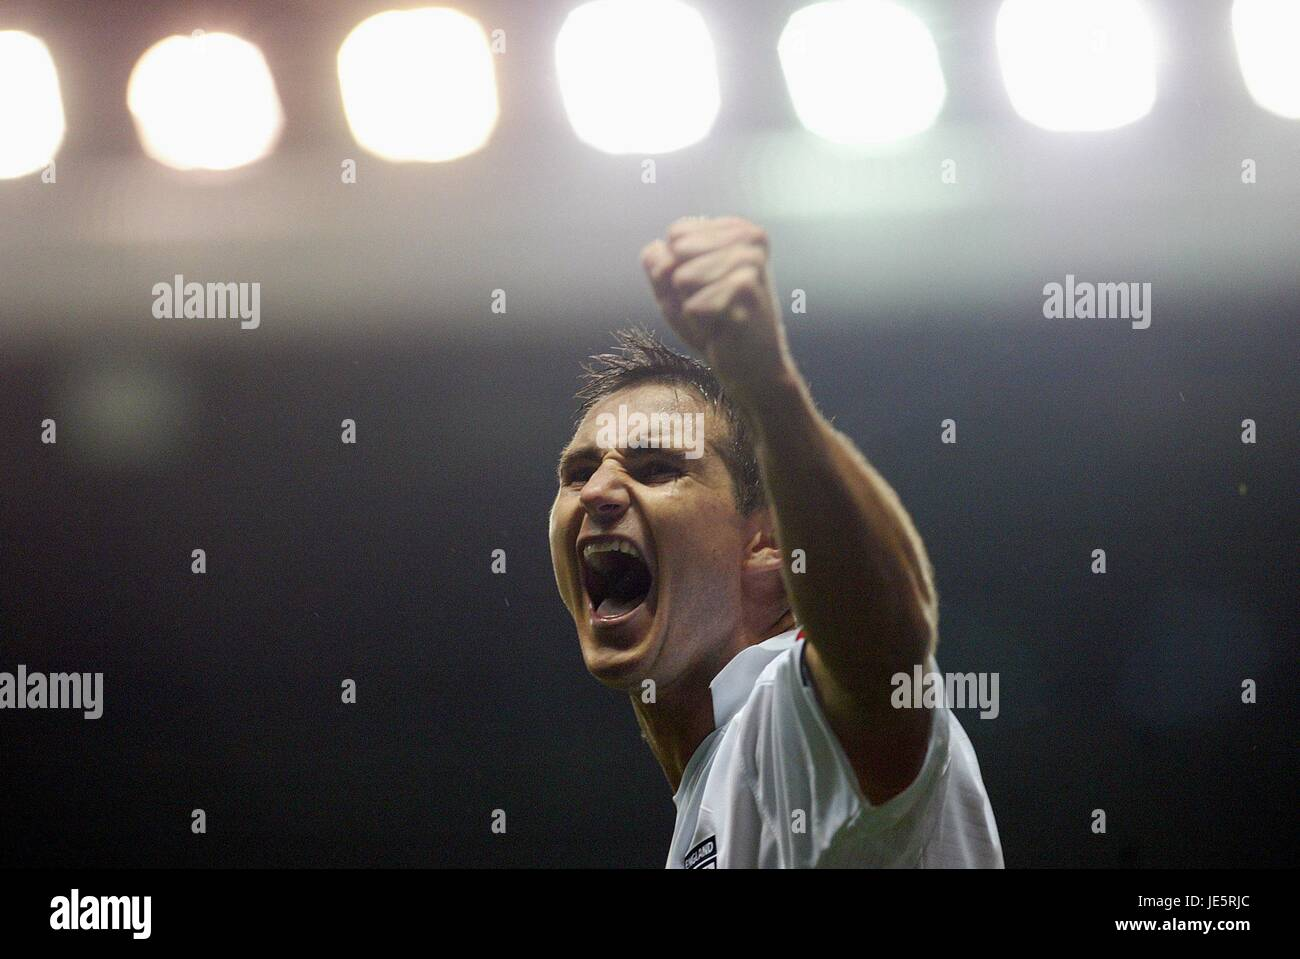 LAMPARD CELEBRATES ENGLAND V POLAND 12 October 2005 - Stock Image